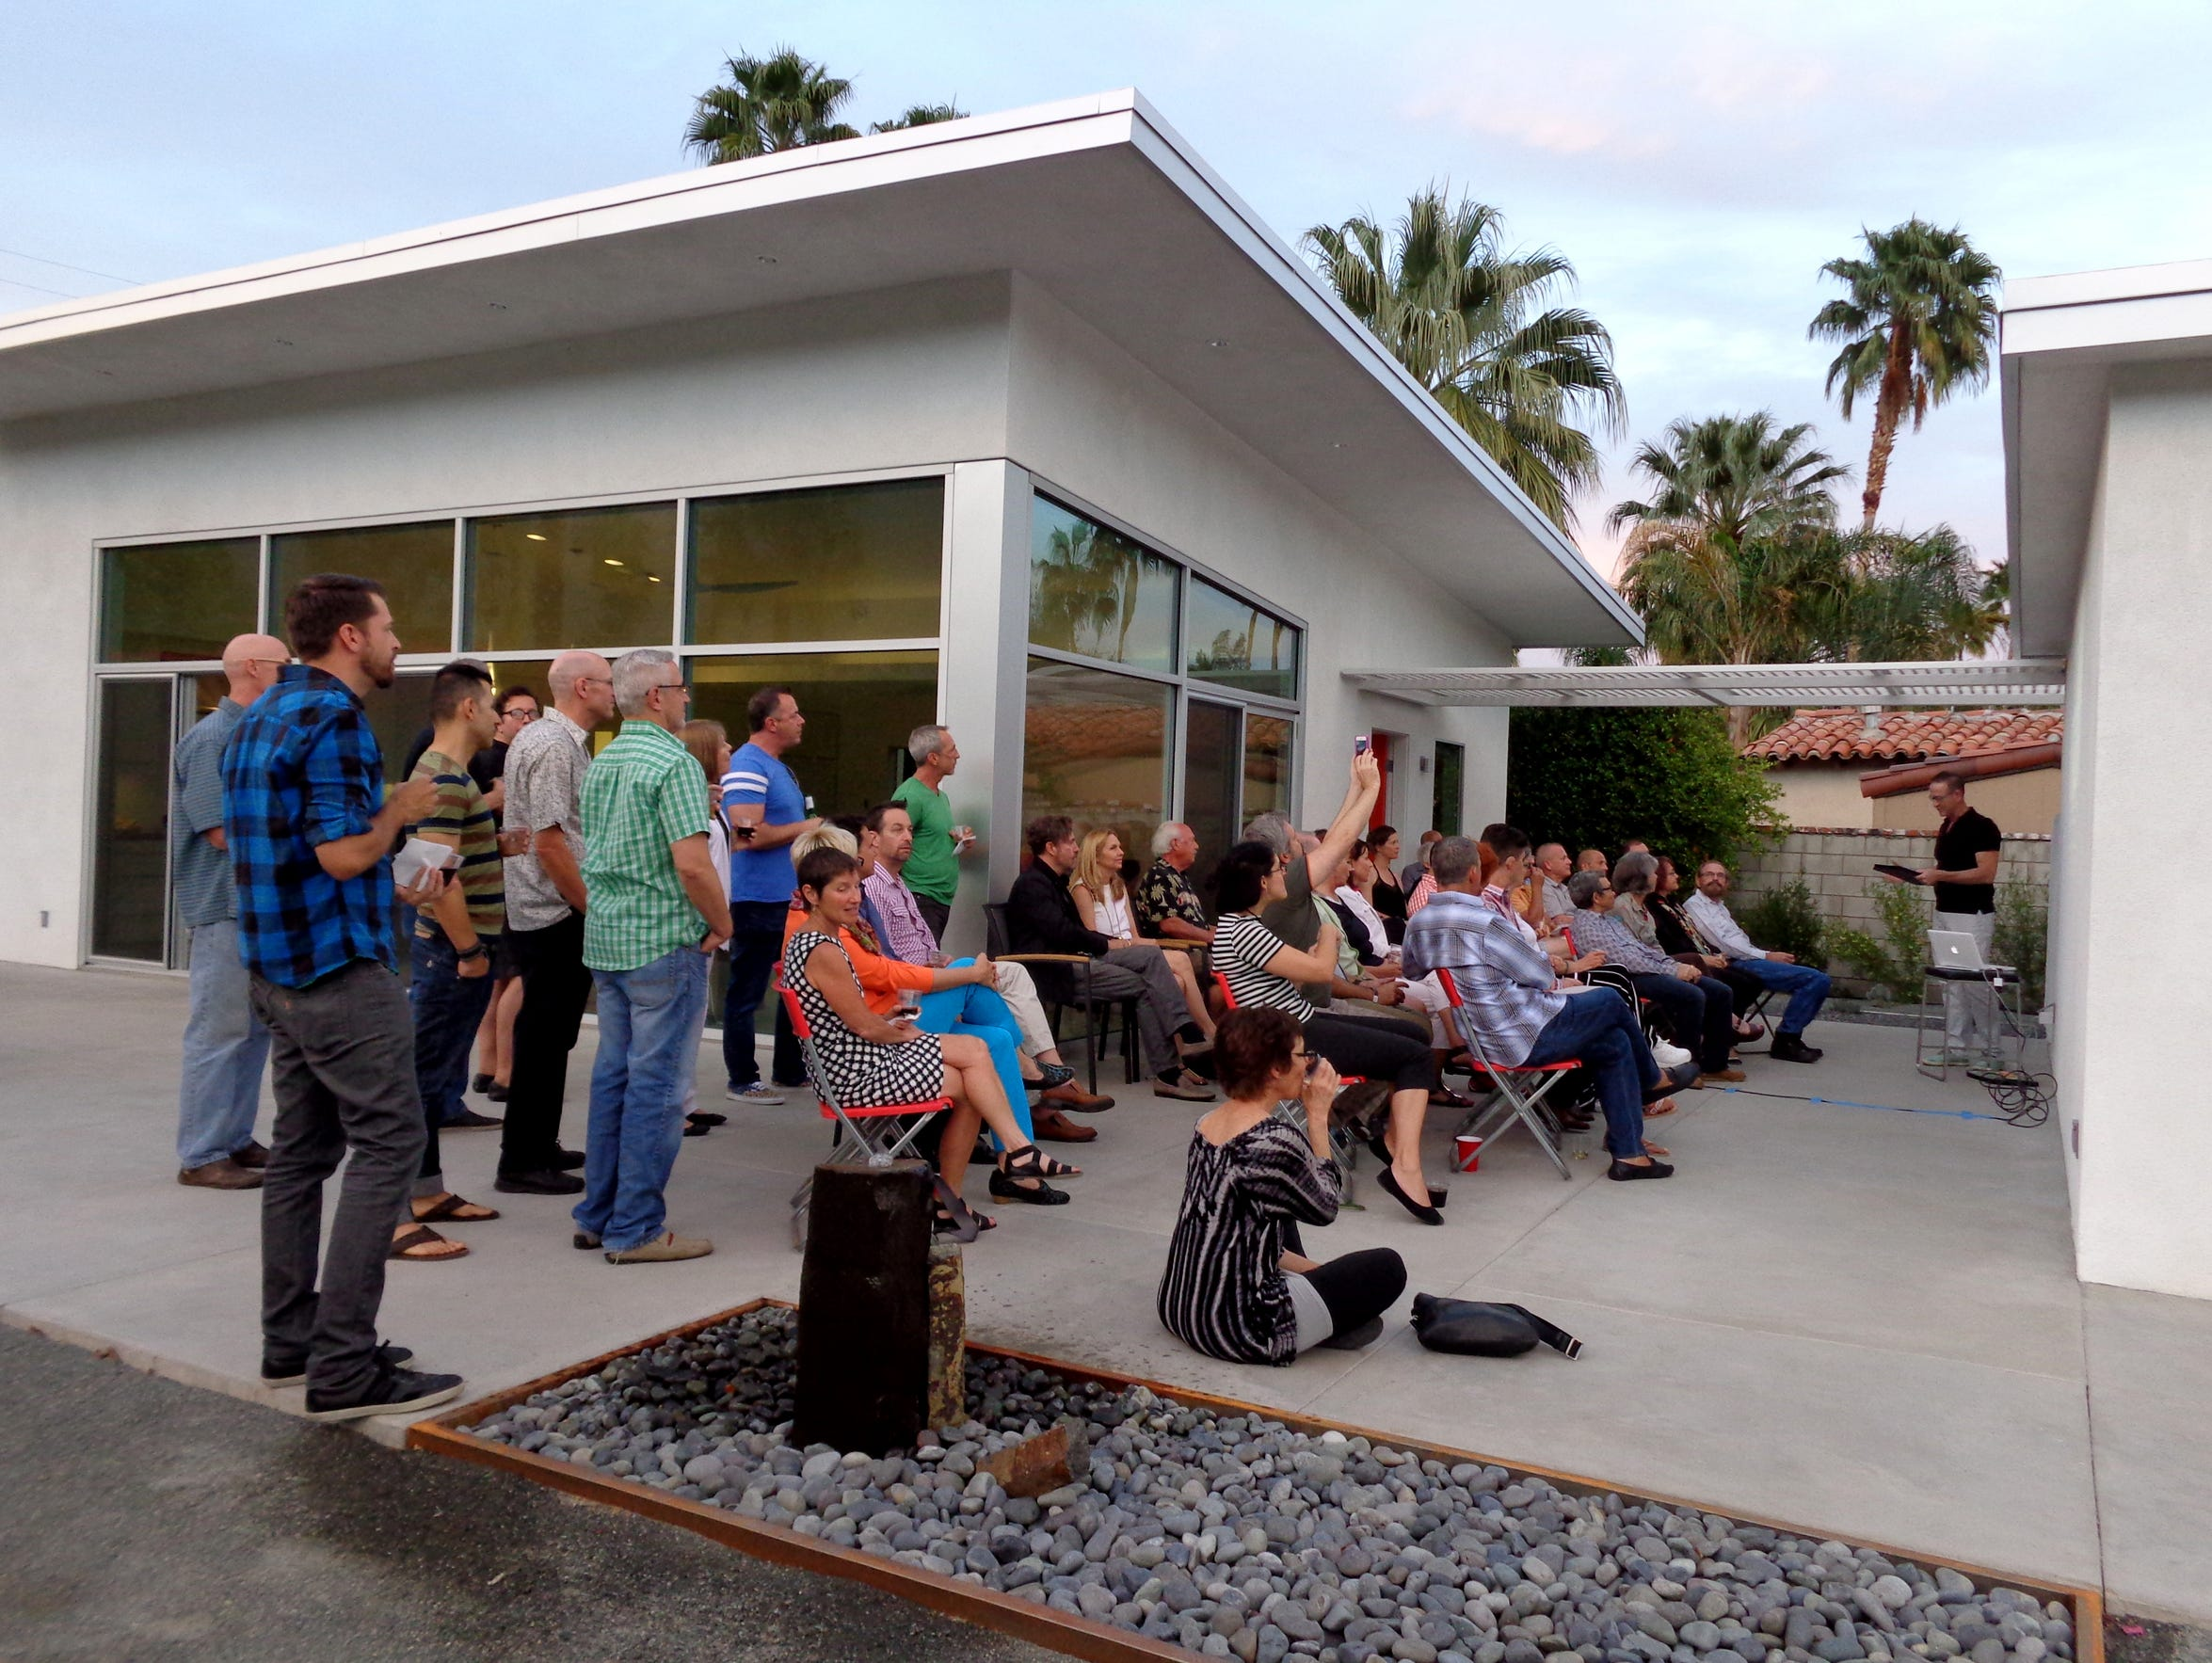 Parchies gather at a salon in Palm Springs.